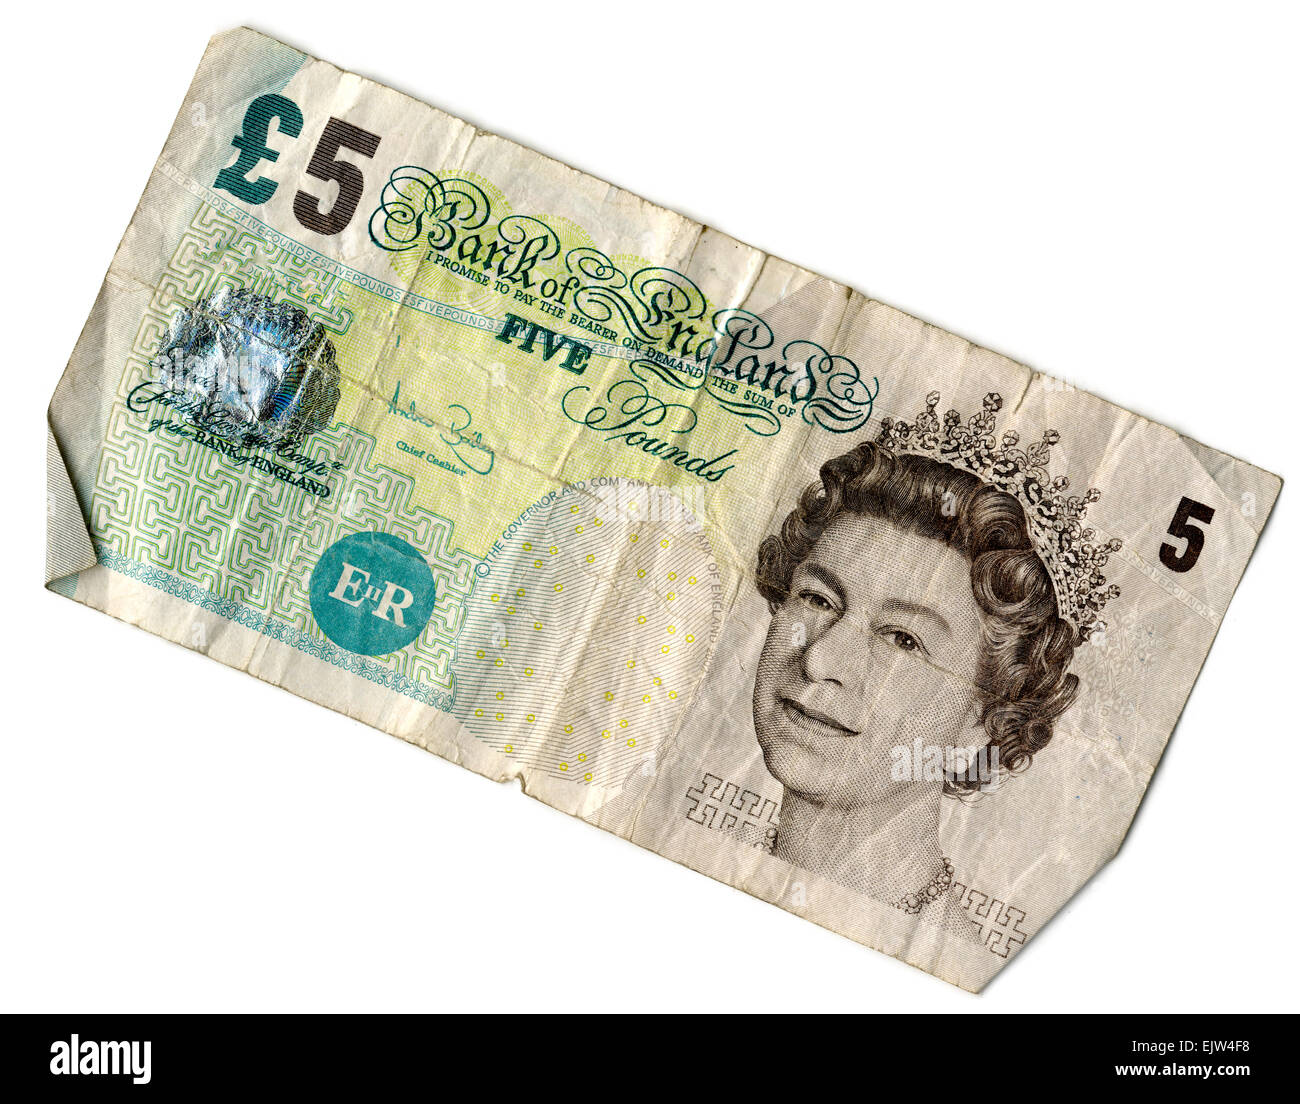 Used Old £5 Pound Note, front view - Stock Image